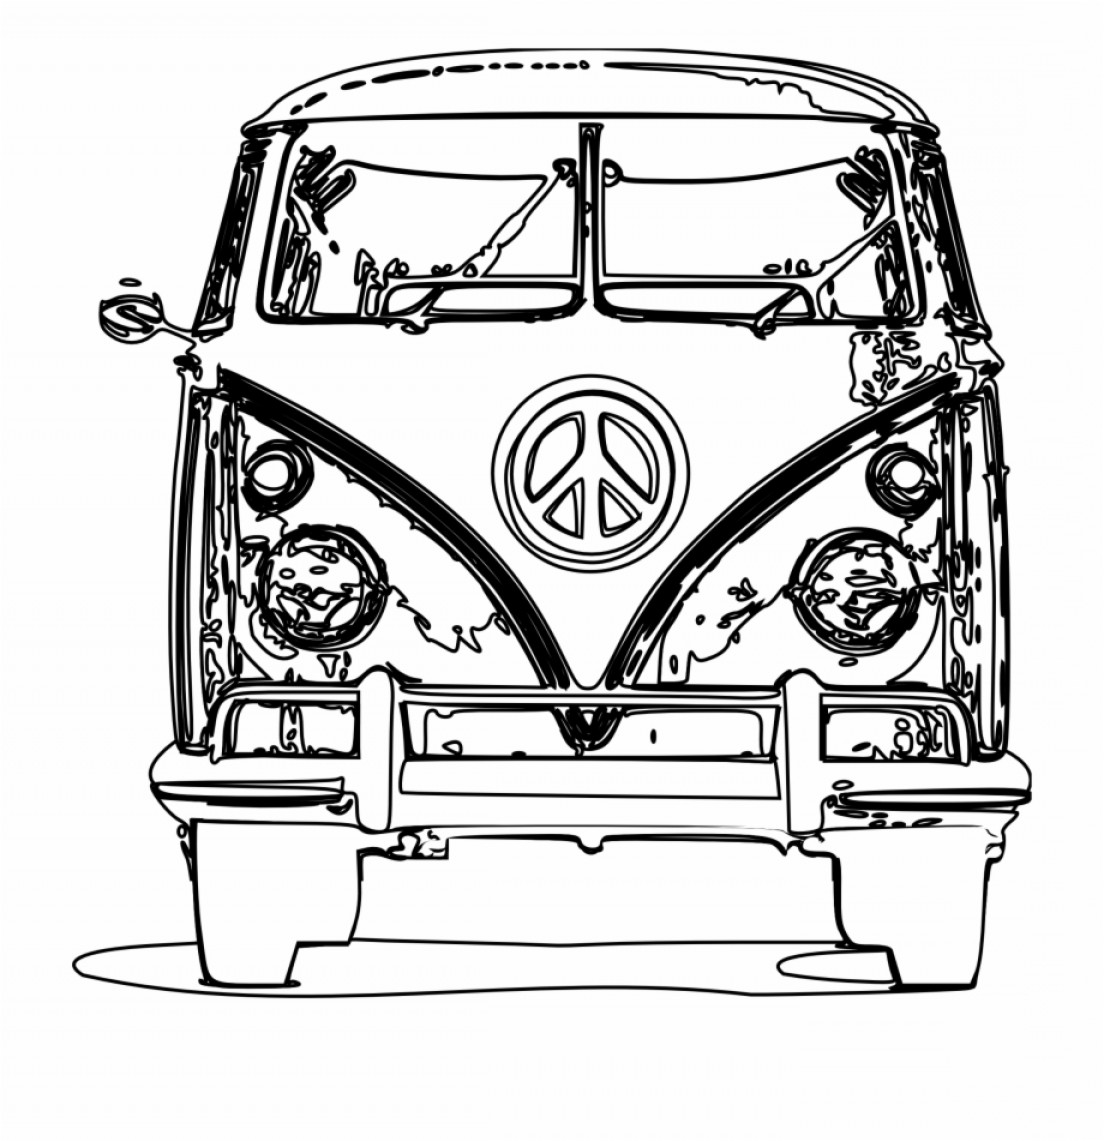 Volkswagen Bus Vector: Homorxvector Library Library Bus Black And White Panda